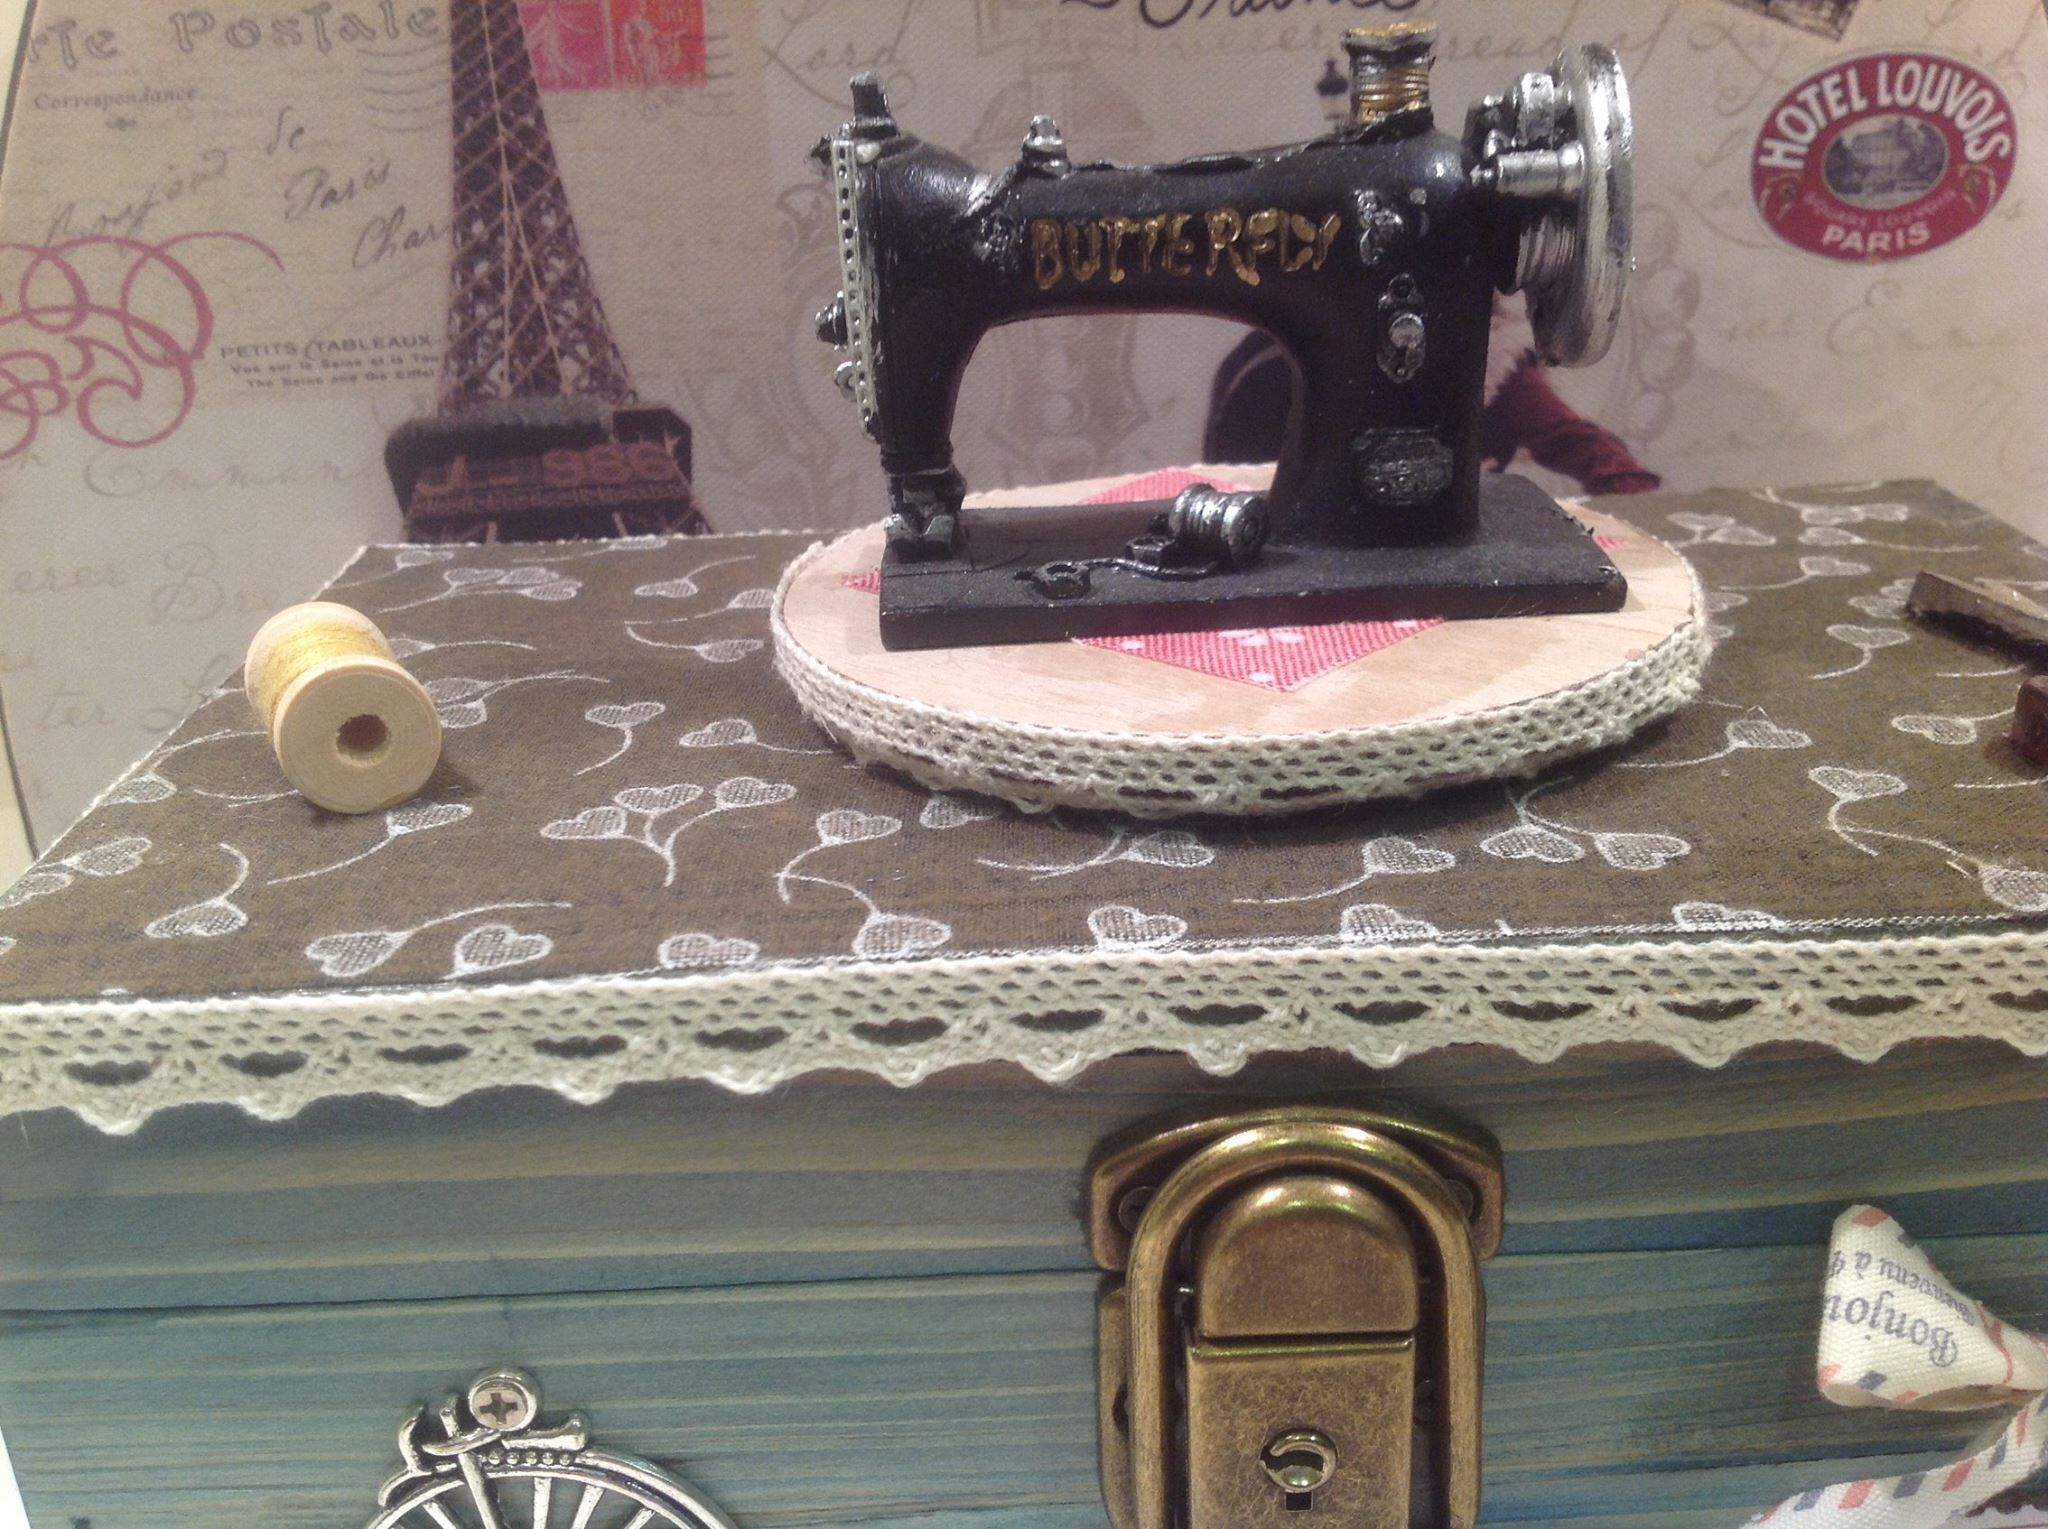 Sewing little box that looks like sewing machine!